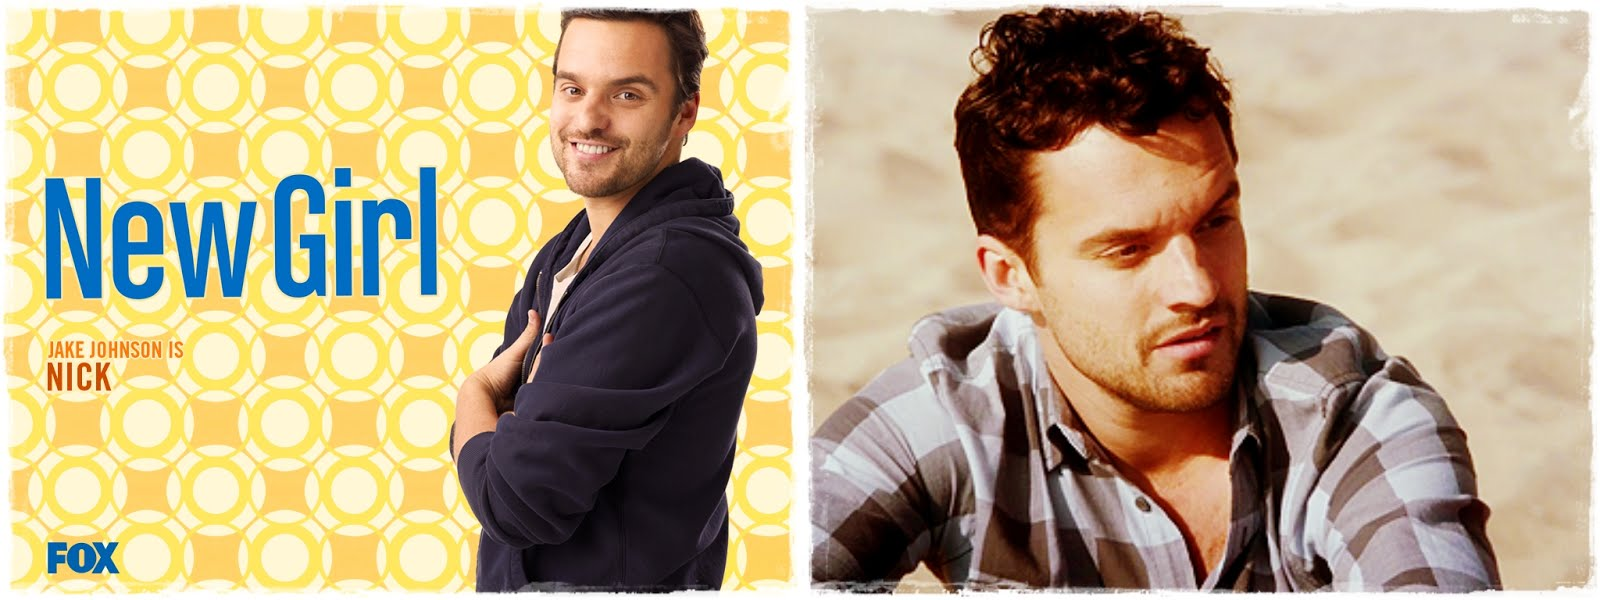 New Girl - Nick Miller - Jake Johnson